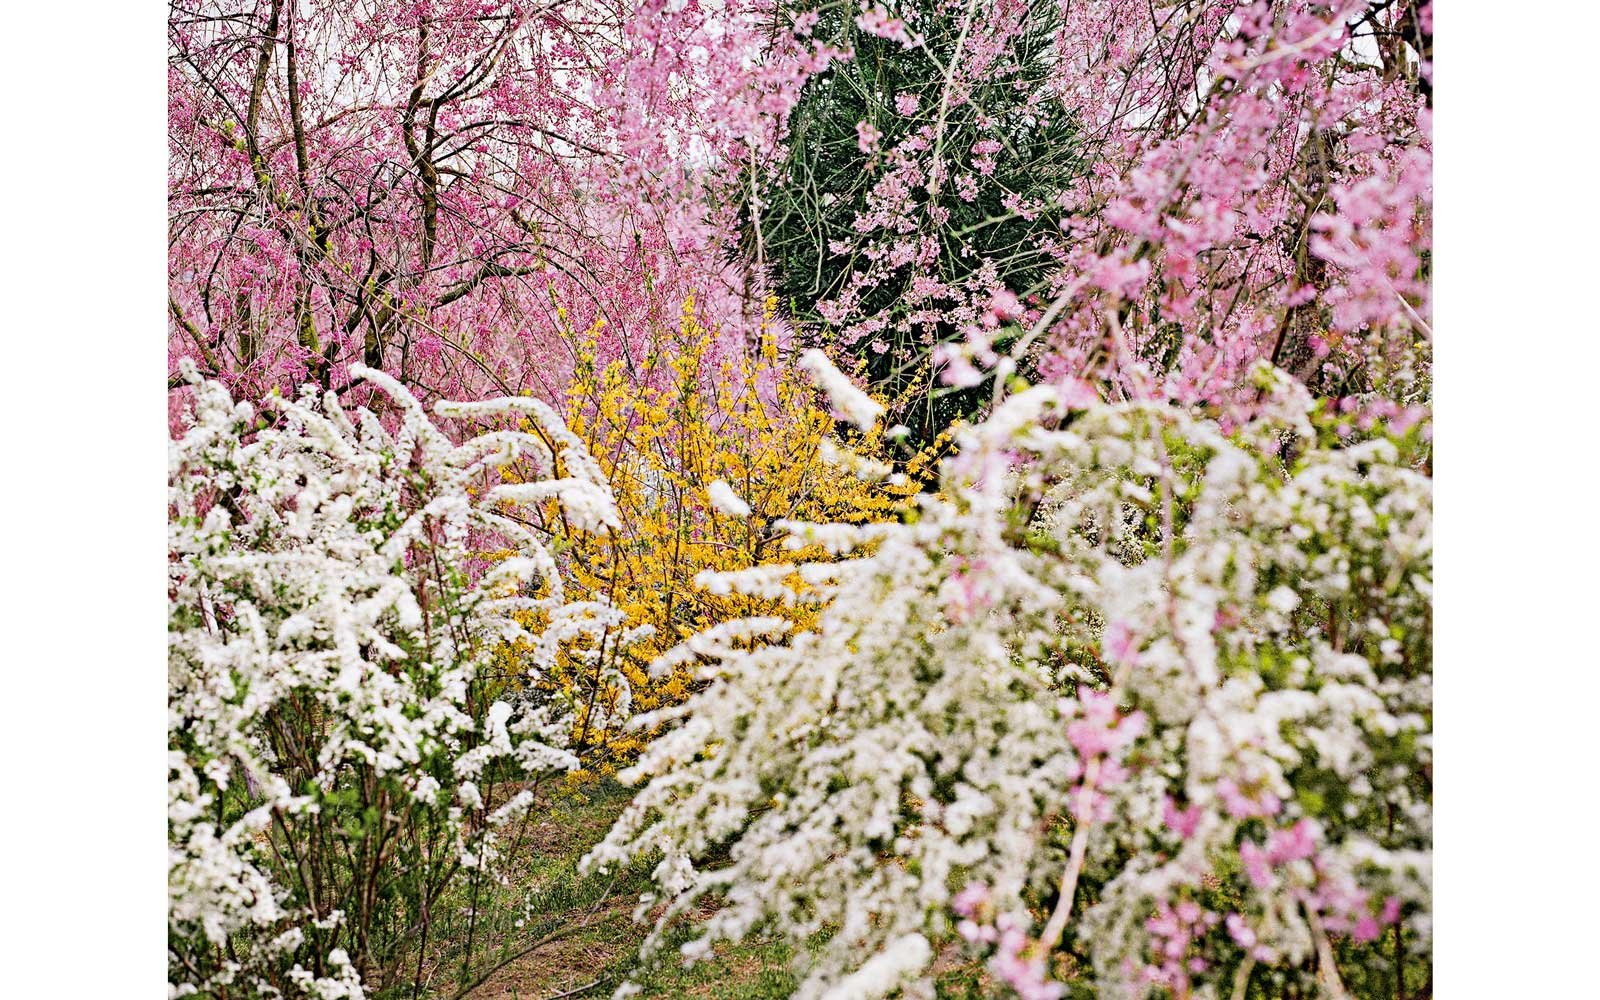 Jacqueline Hassink, Haradani-en 1, Northwest Kyoto, 2010; from the series View, Kyoto